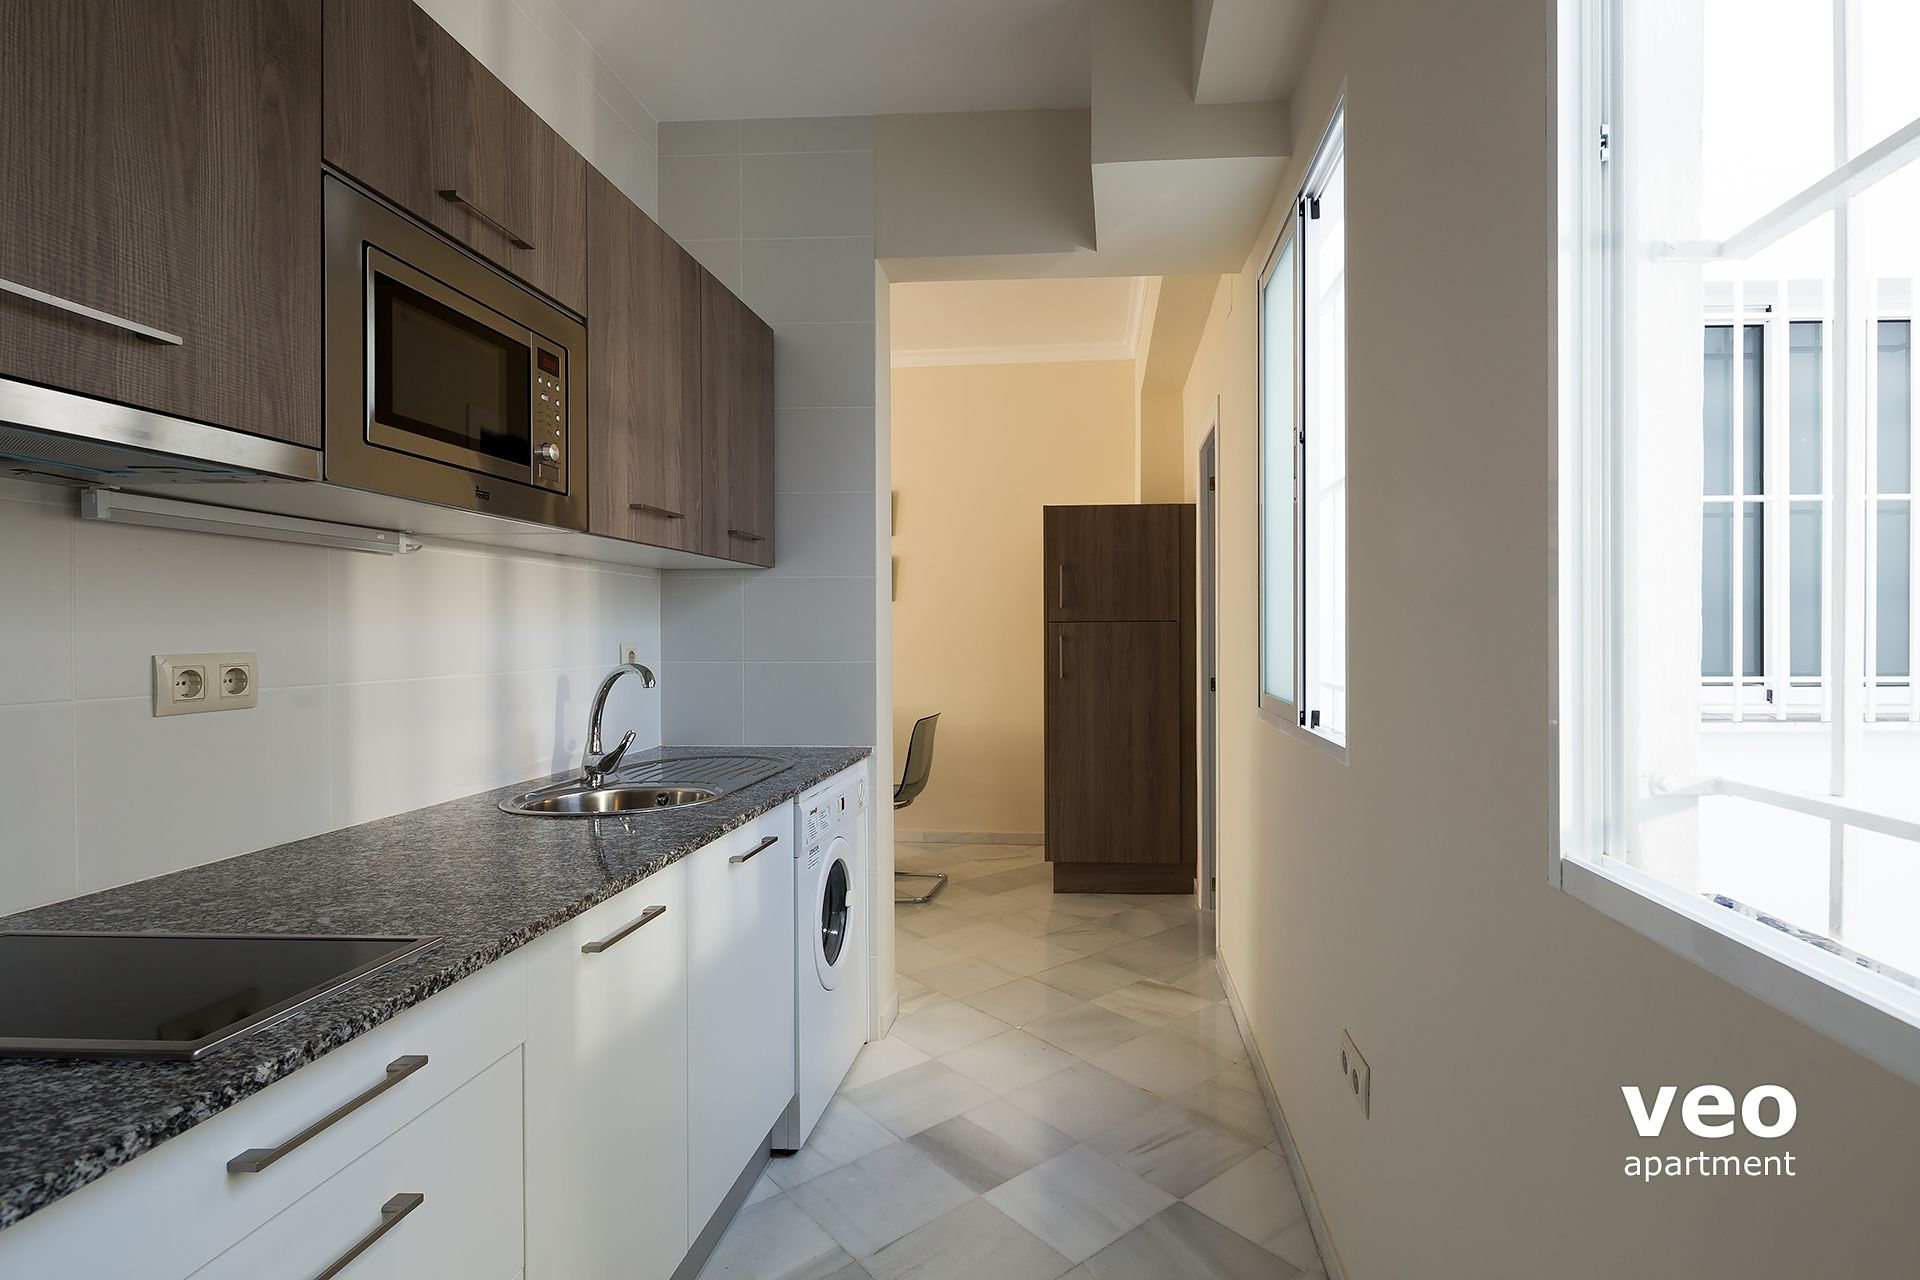 seville apartment galley kitchen in the entrance area well equipped for self catering